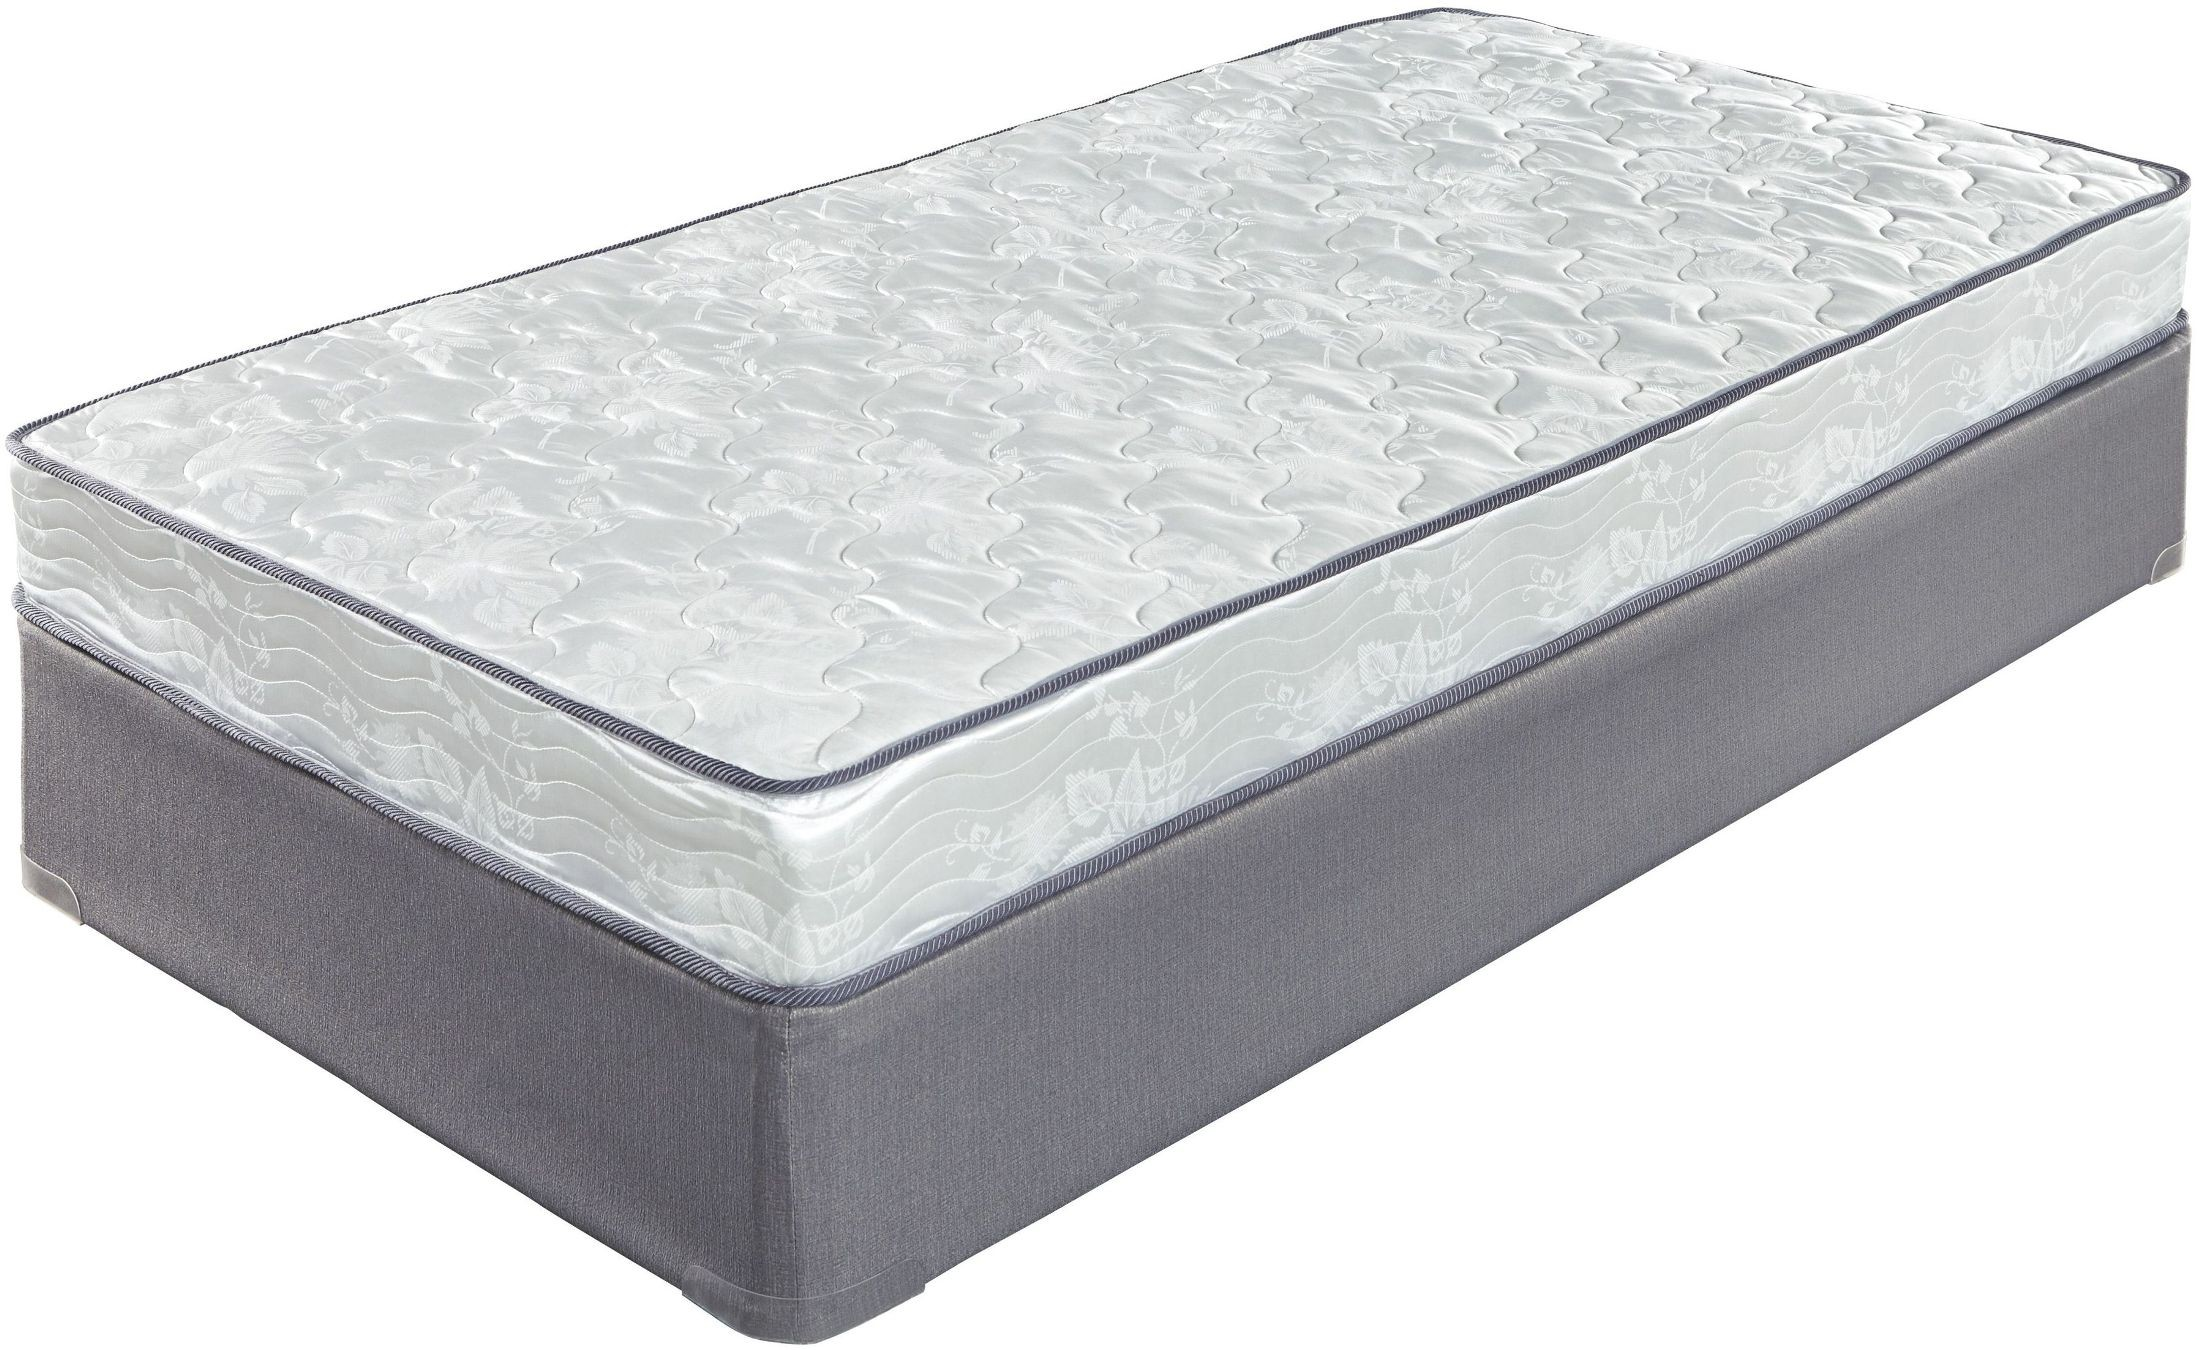 6 Inch Bonell White Queen Mattress from Ashley | Coleman ...